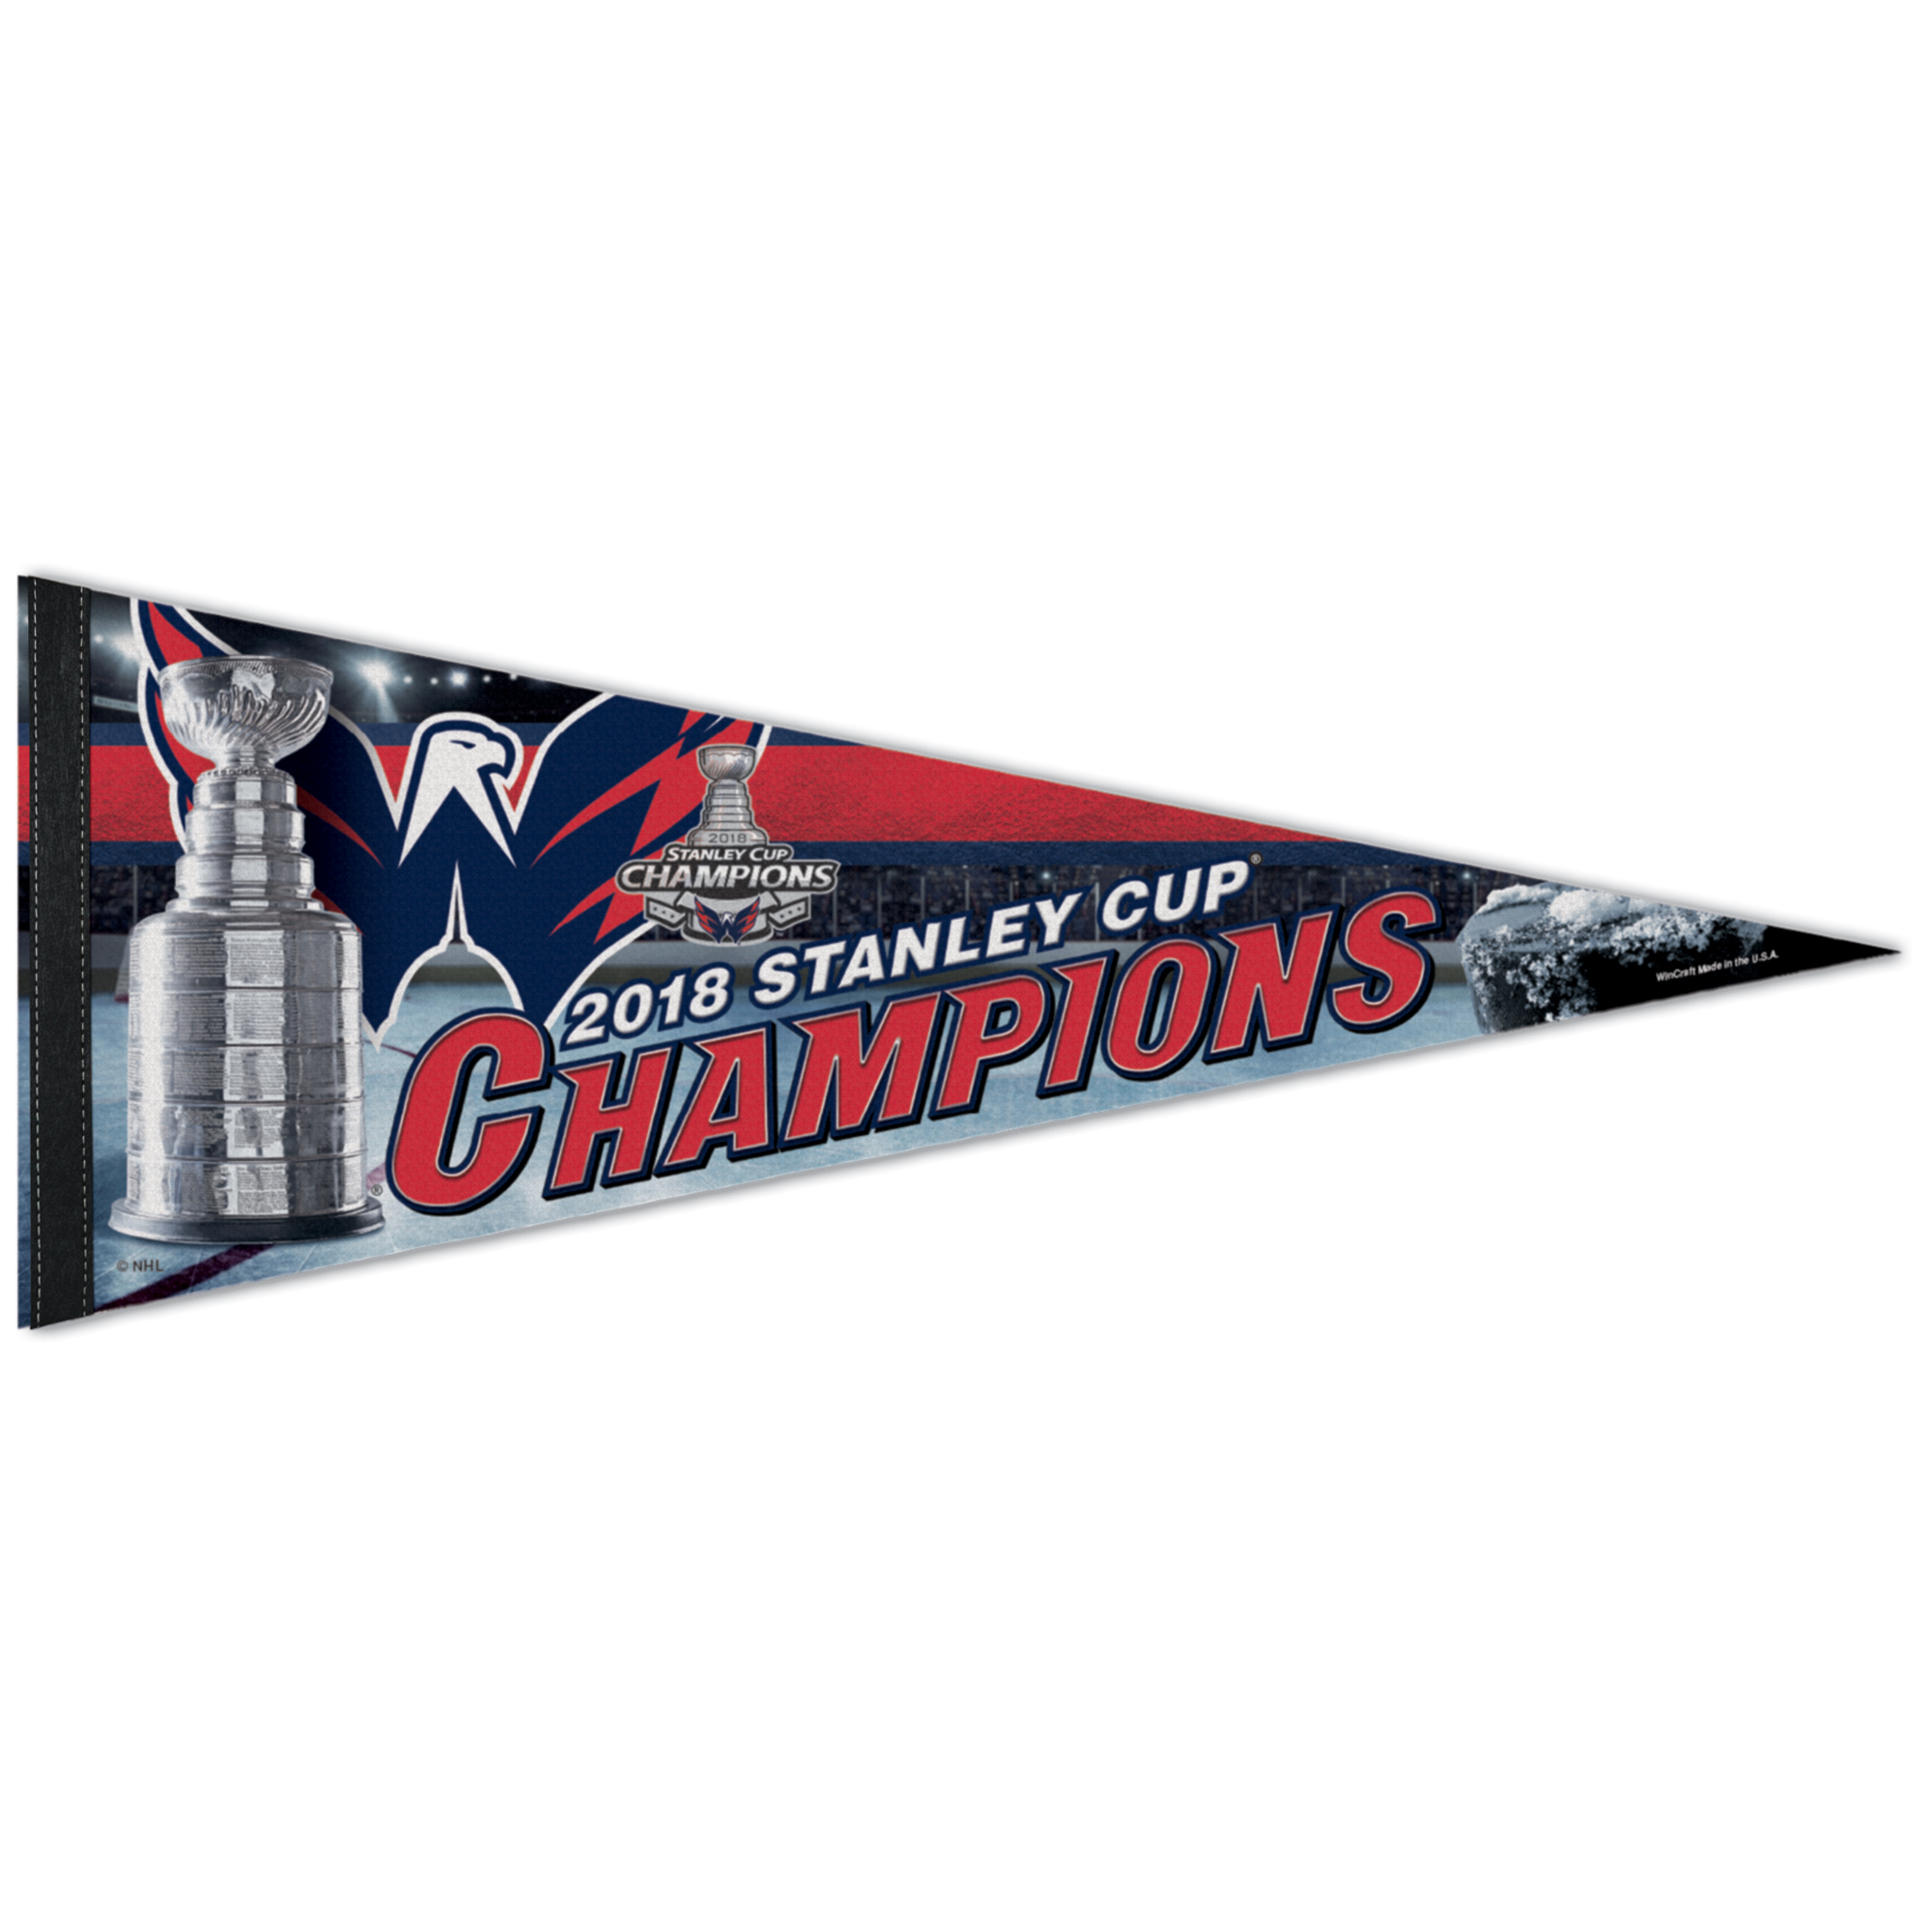 "Washington Capitals WinCraft 2018 Stanley Cup Champions 12"" x 30"" Locker Room Official On Ice Celebration Pennant - No Size"